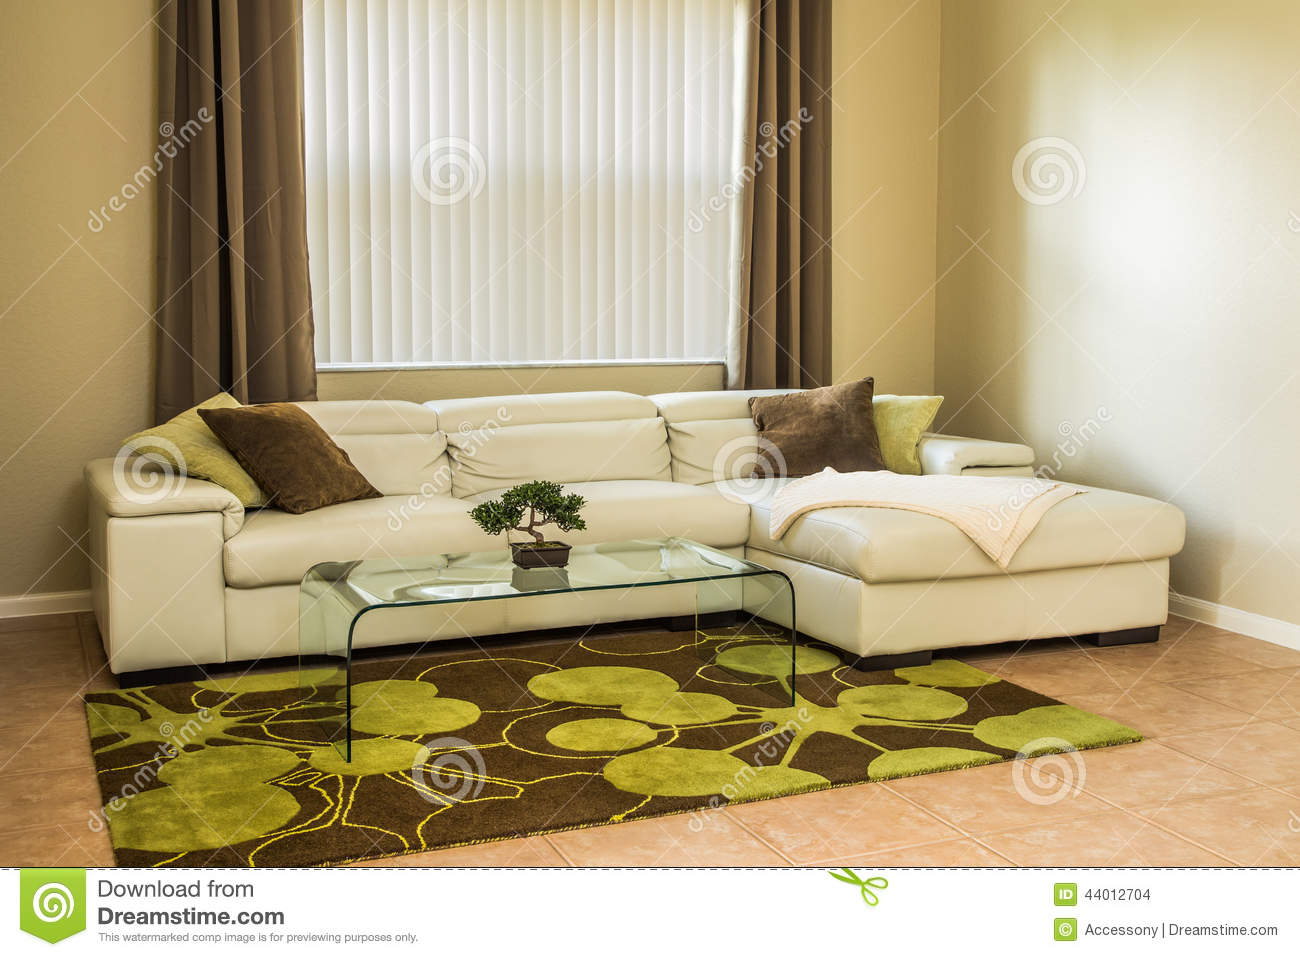 Cozy Living Room In Olive Green Colors Stock Photo Image  : cozy living room olive green colors modern white leather sofa glass table modern rug brown pattern curtains pillows 44012704 from www.dreamstime.com size 1300 x 957 jpeg 143kB